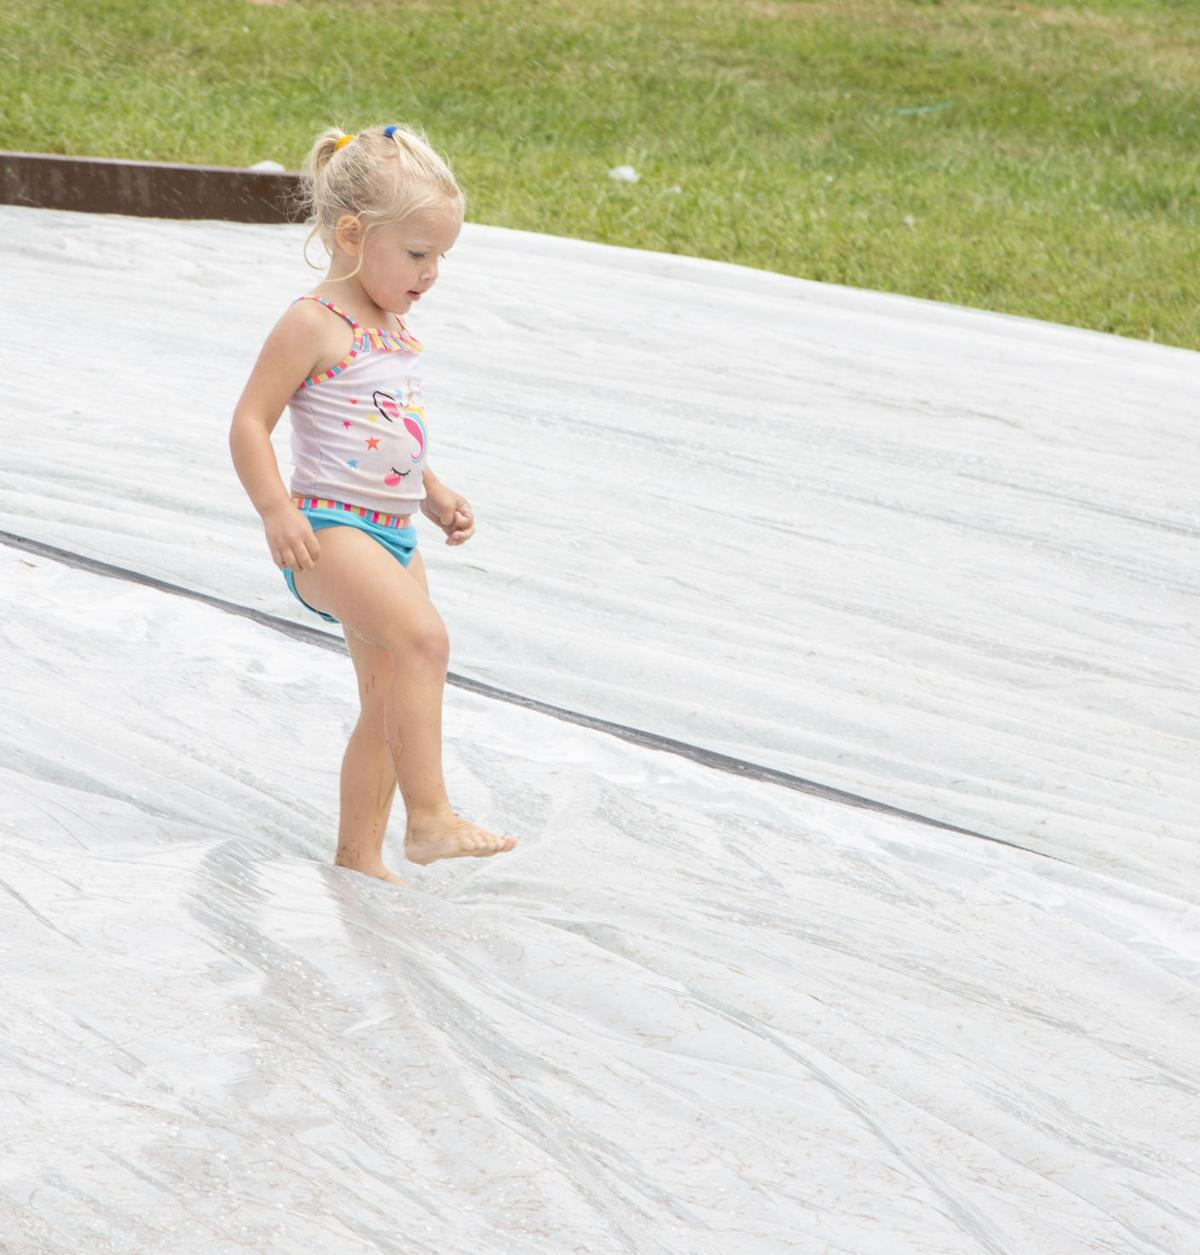 photo_ft_news_slip and slide 2_081419.jpg